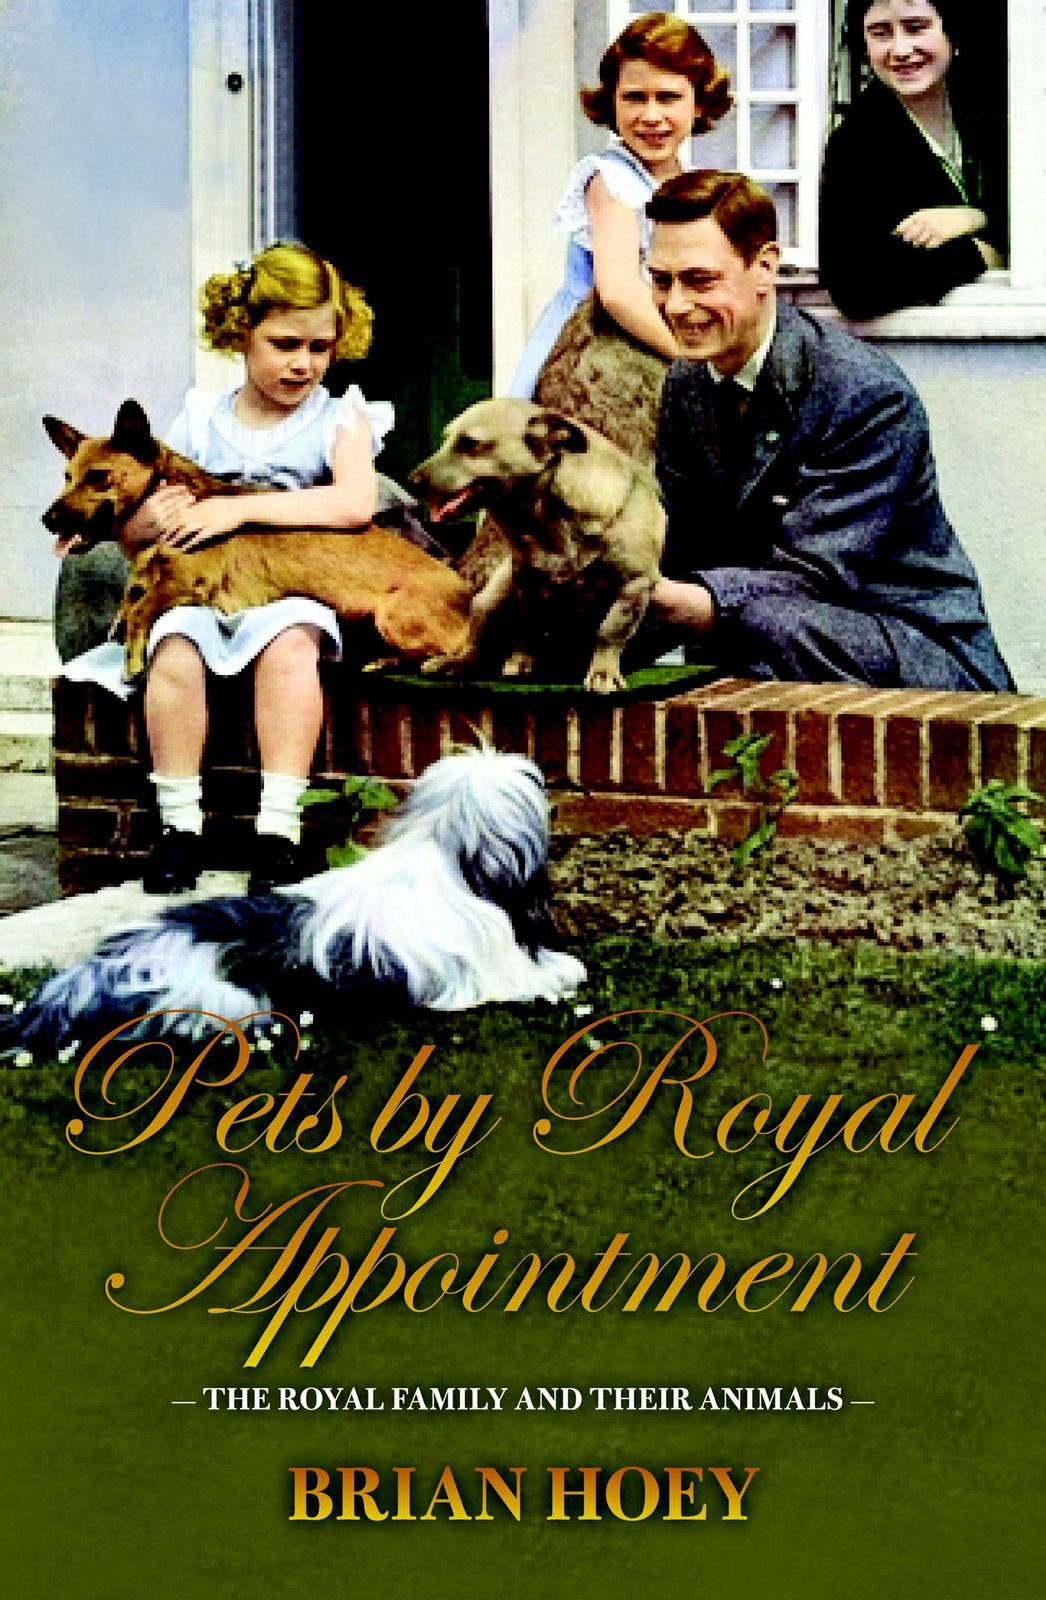 Pets by Royal Appointment: The Royal Family and their Animals pdf